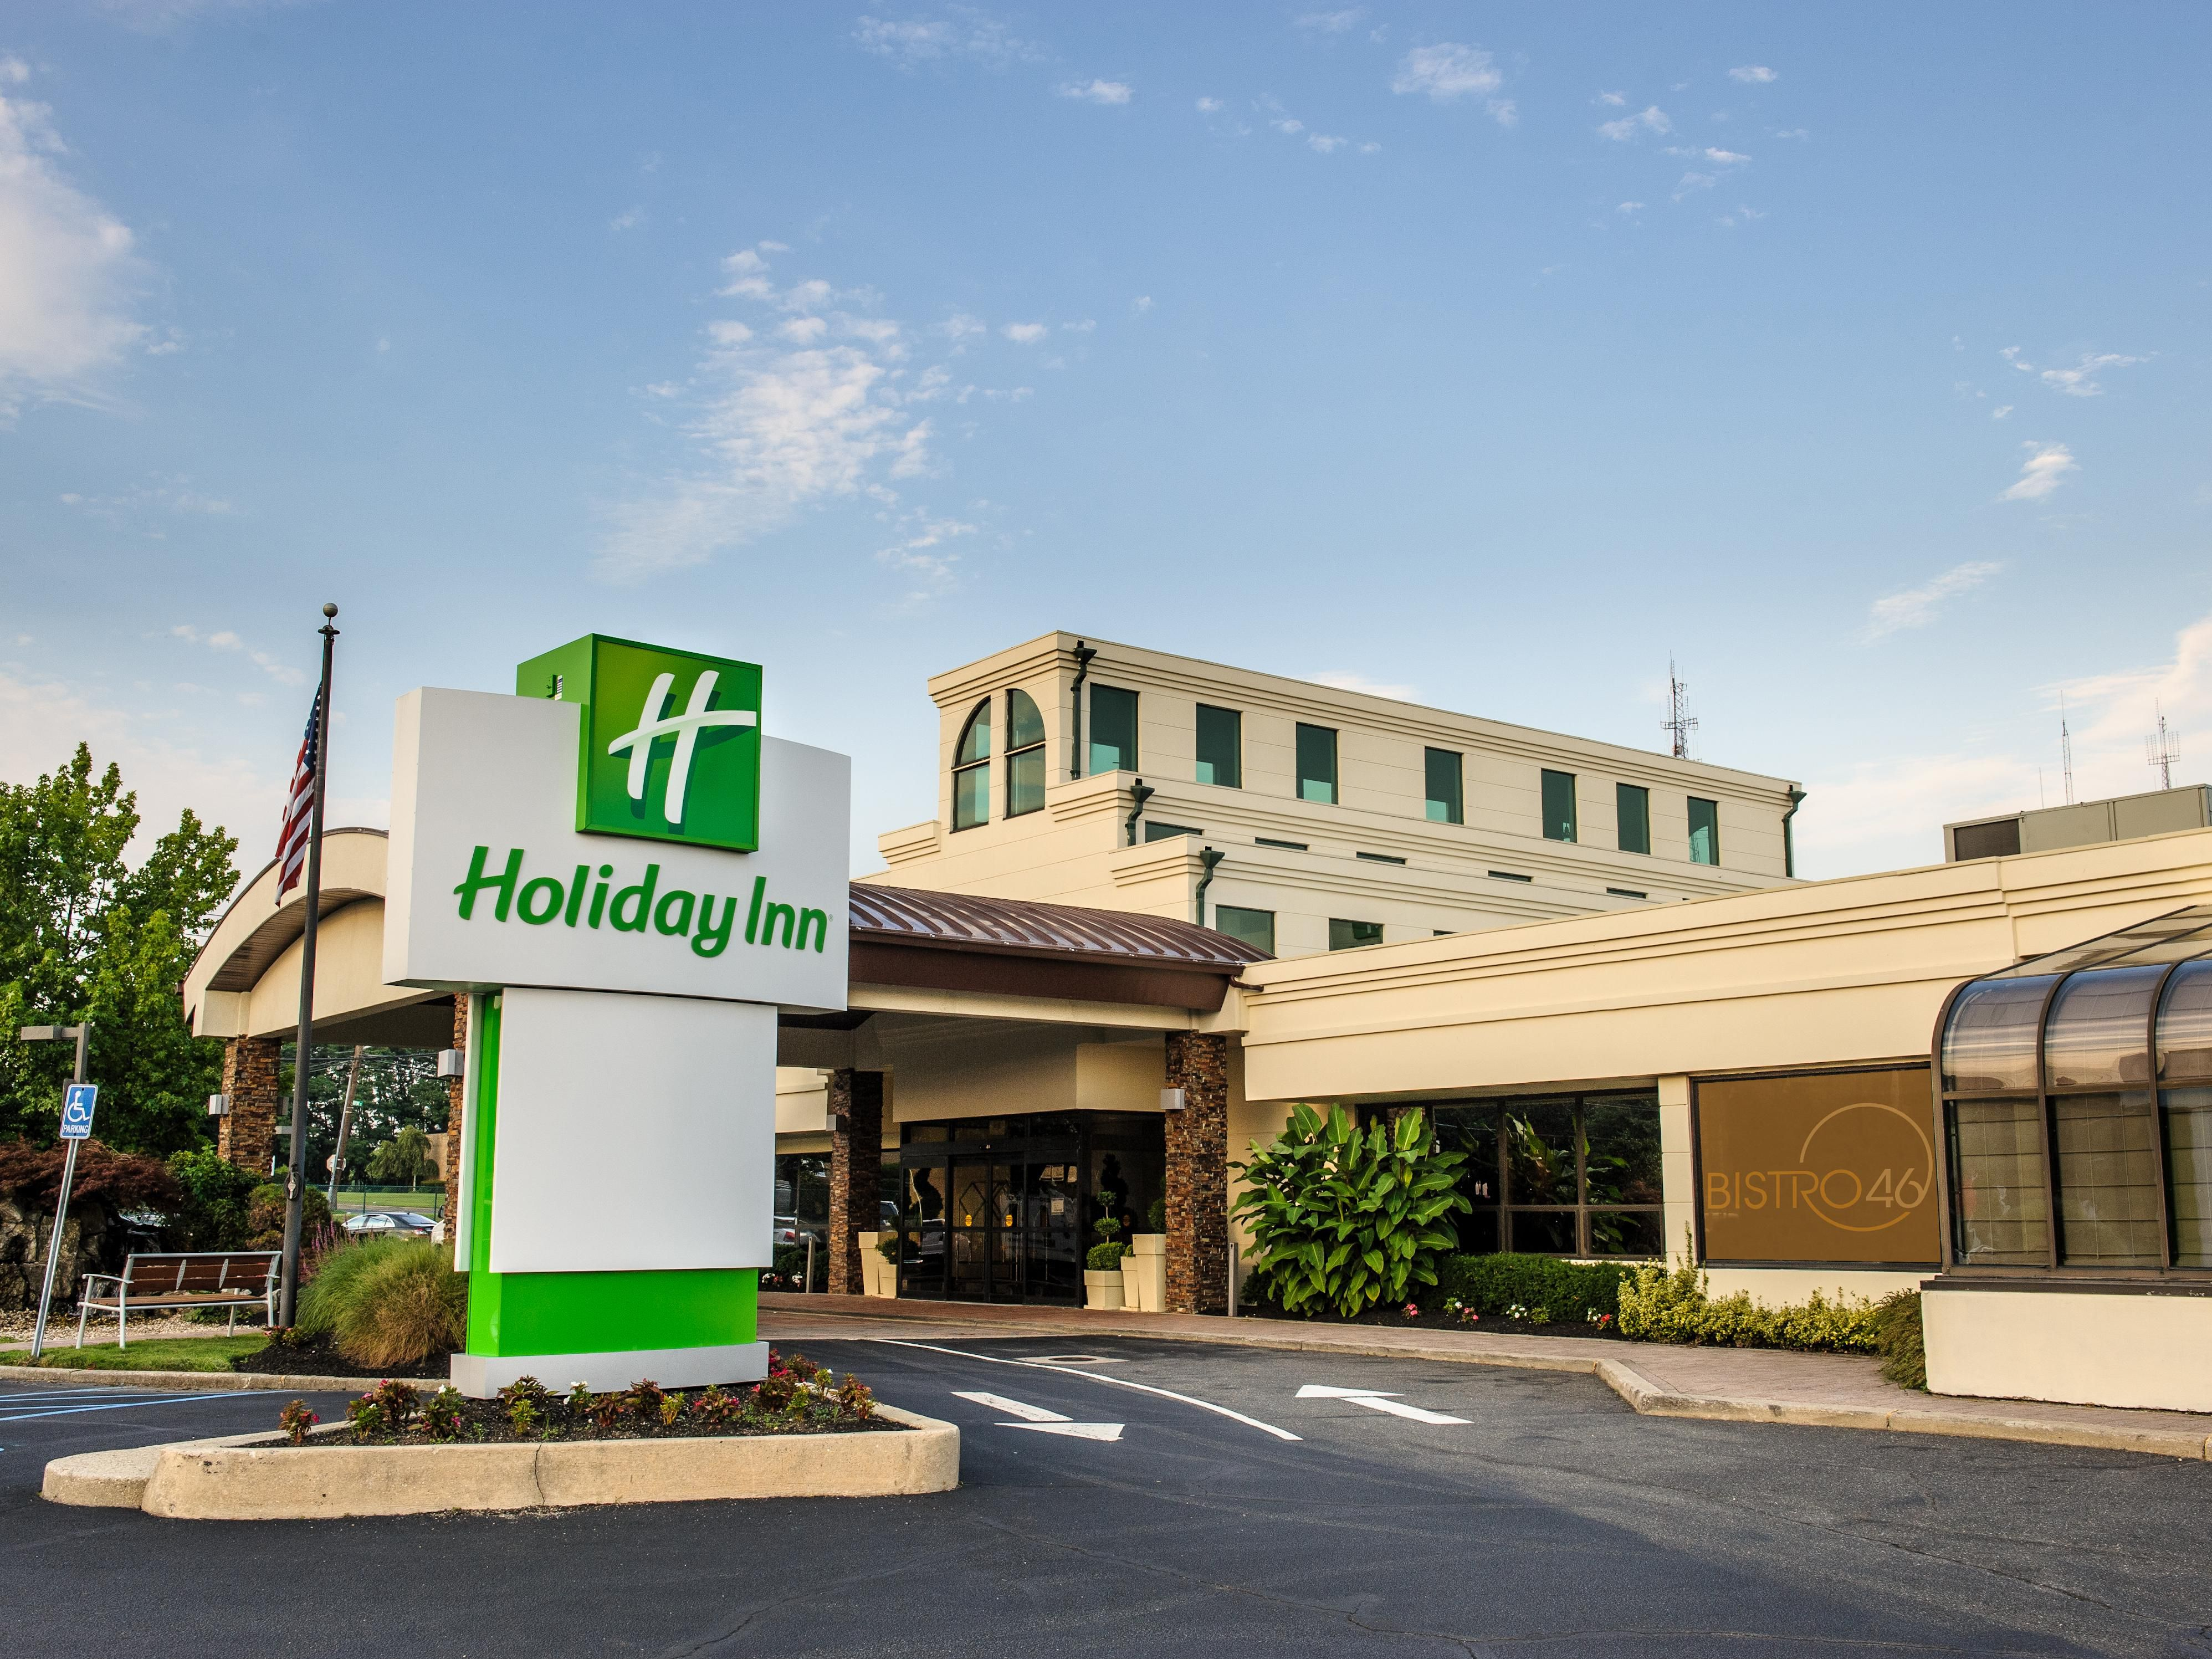 Welcome to the Holiday Inn, Plainview